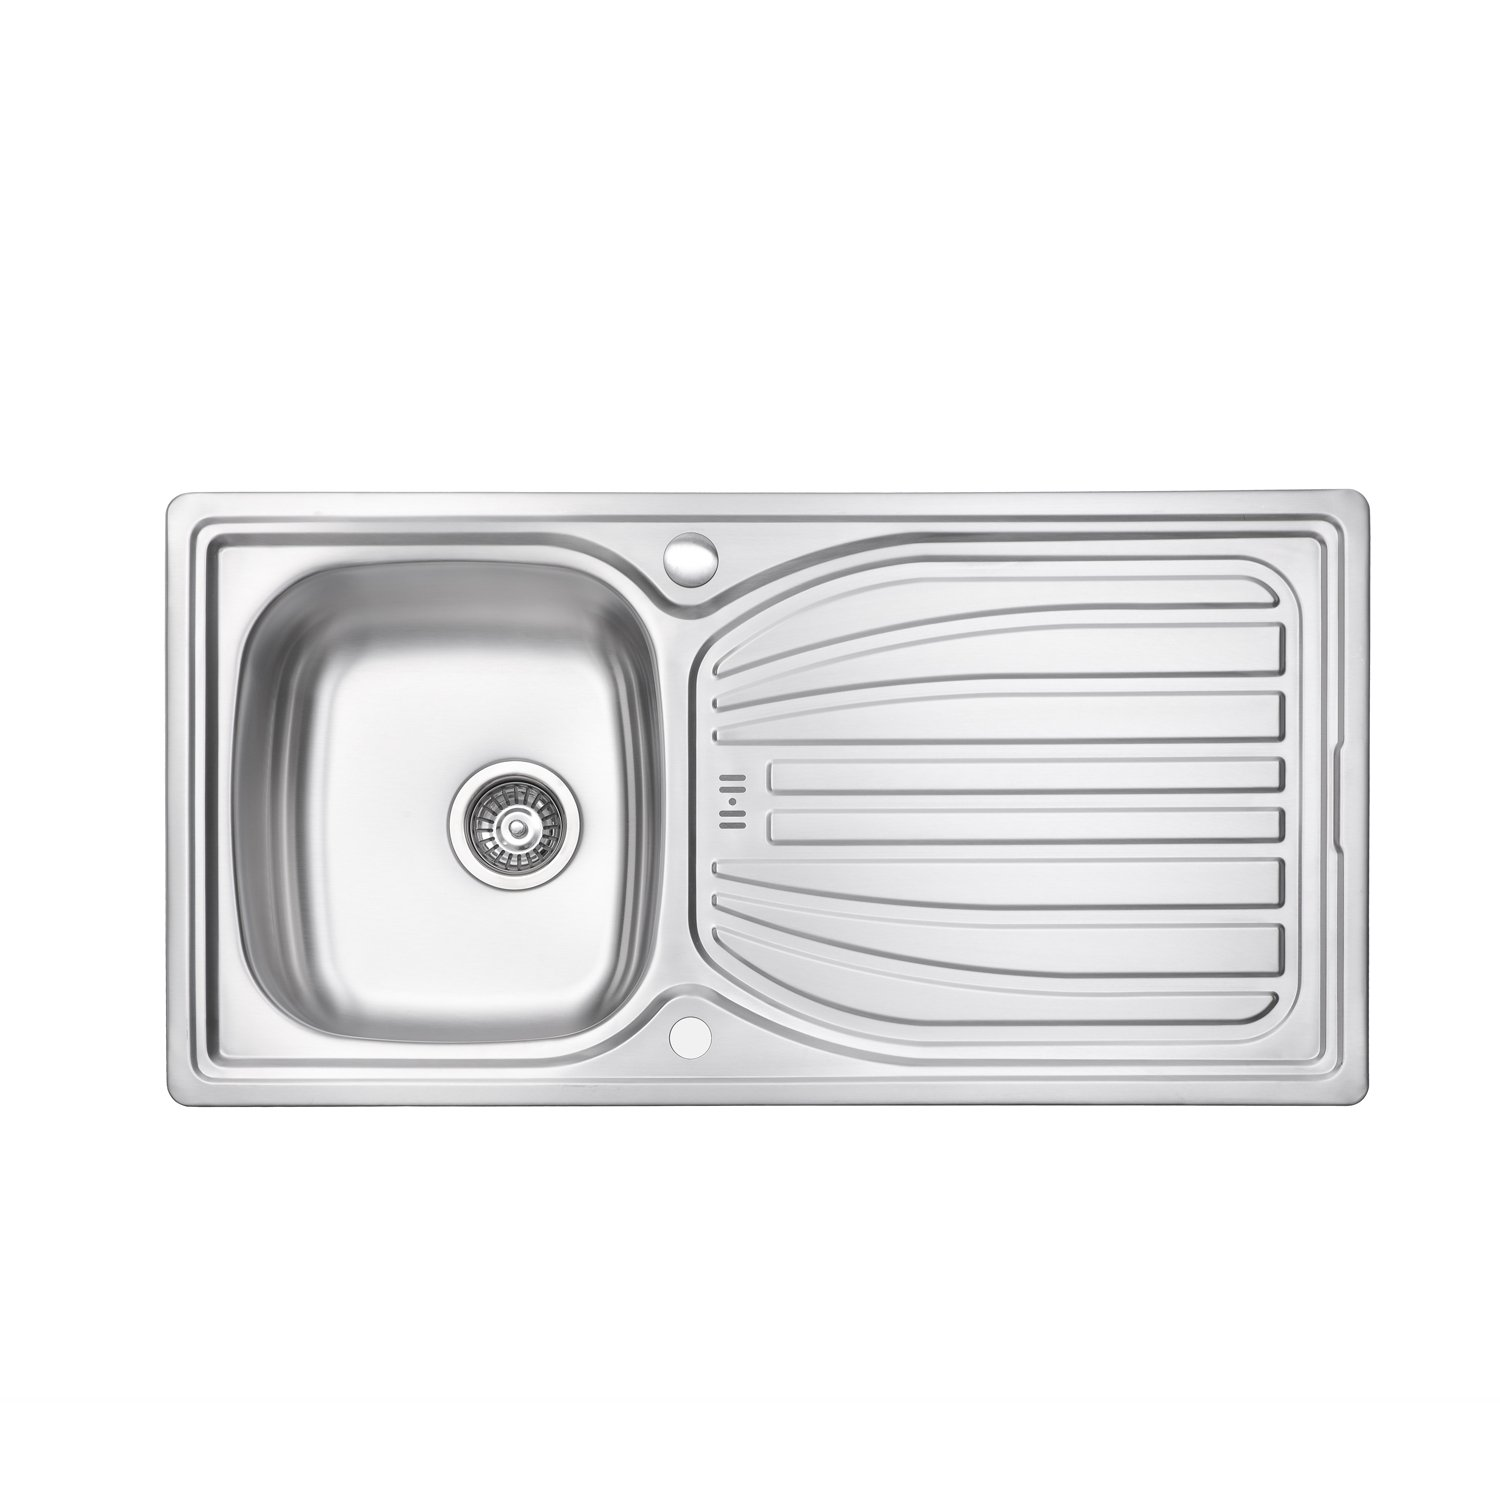 JASS Ferry 980 x 510 mm Stainless Steel Kitchen Sink Single 1.0 Bowl Reversible with Waste Pipes Clips - 10 Year Guarantee